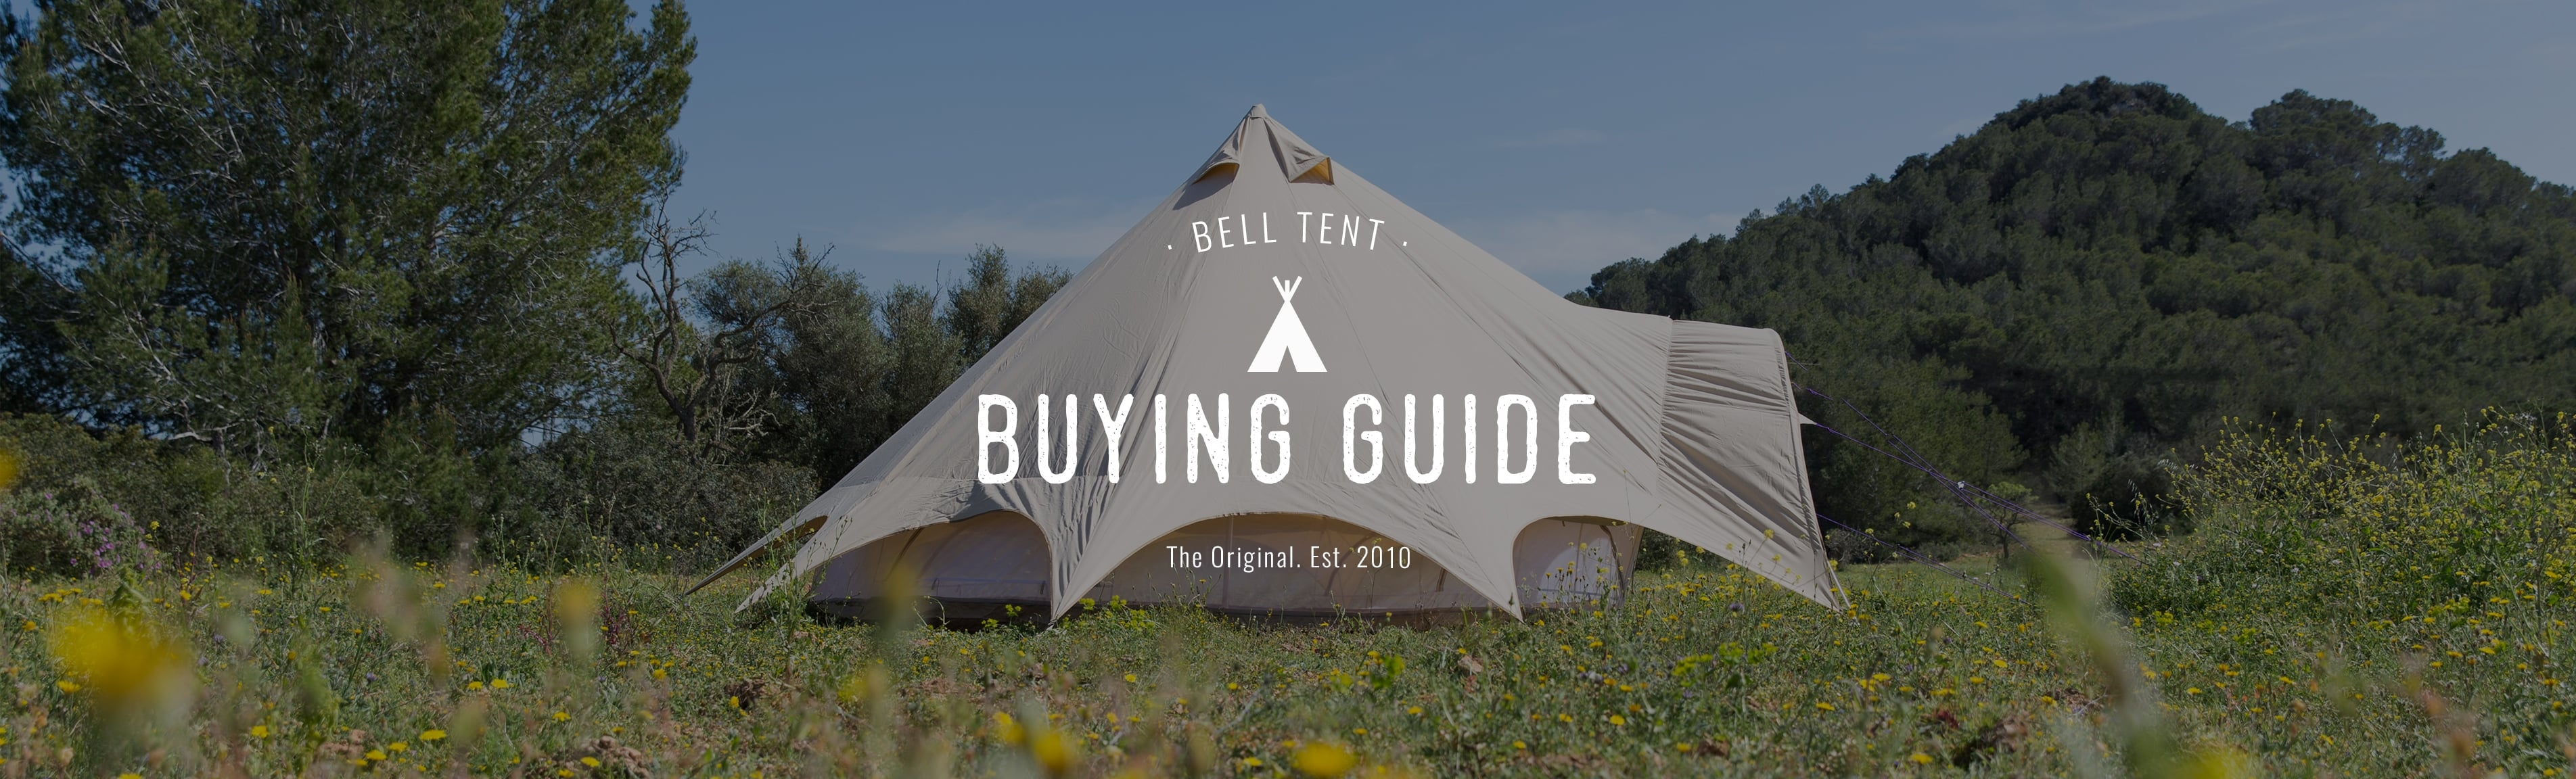 how easy to pitch bell tent